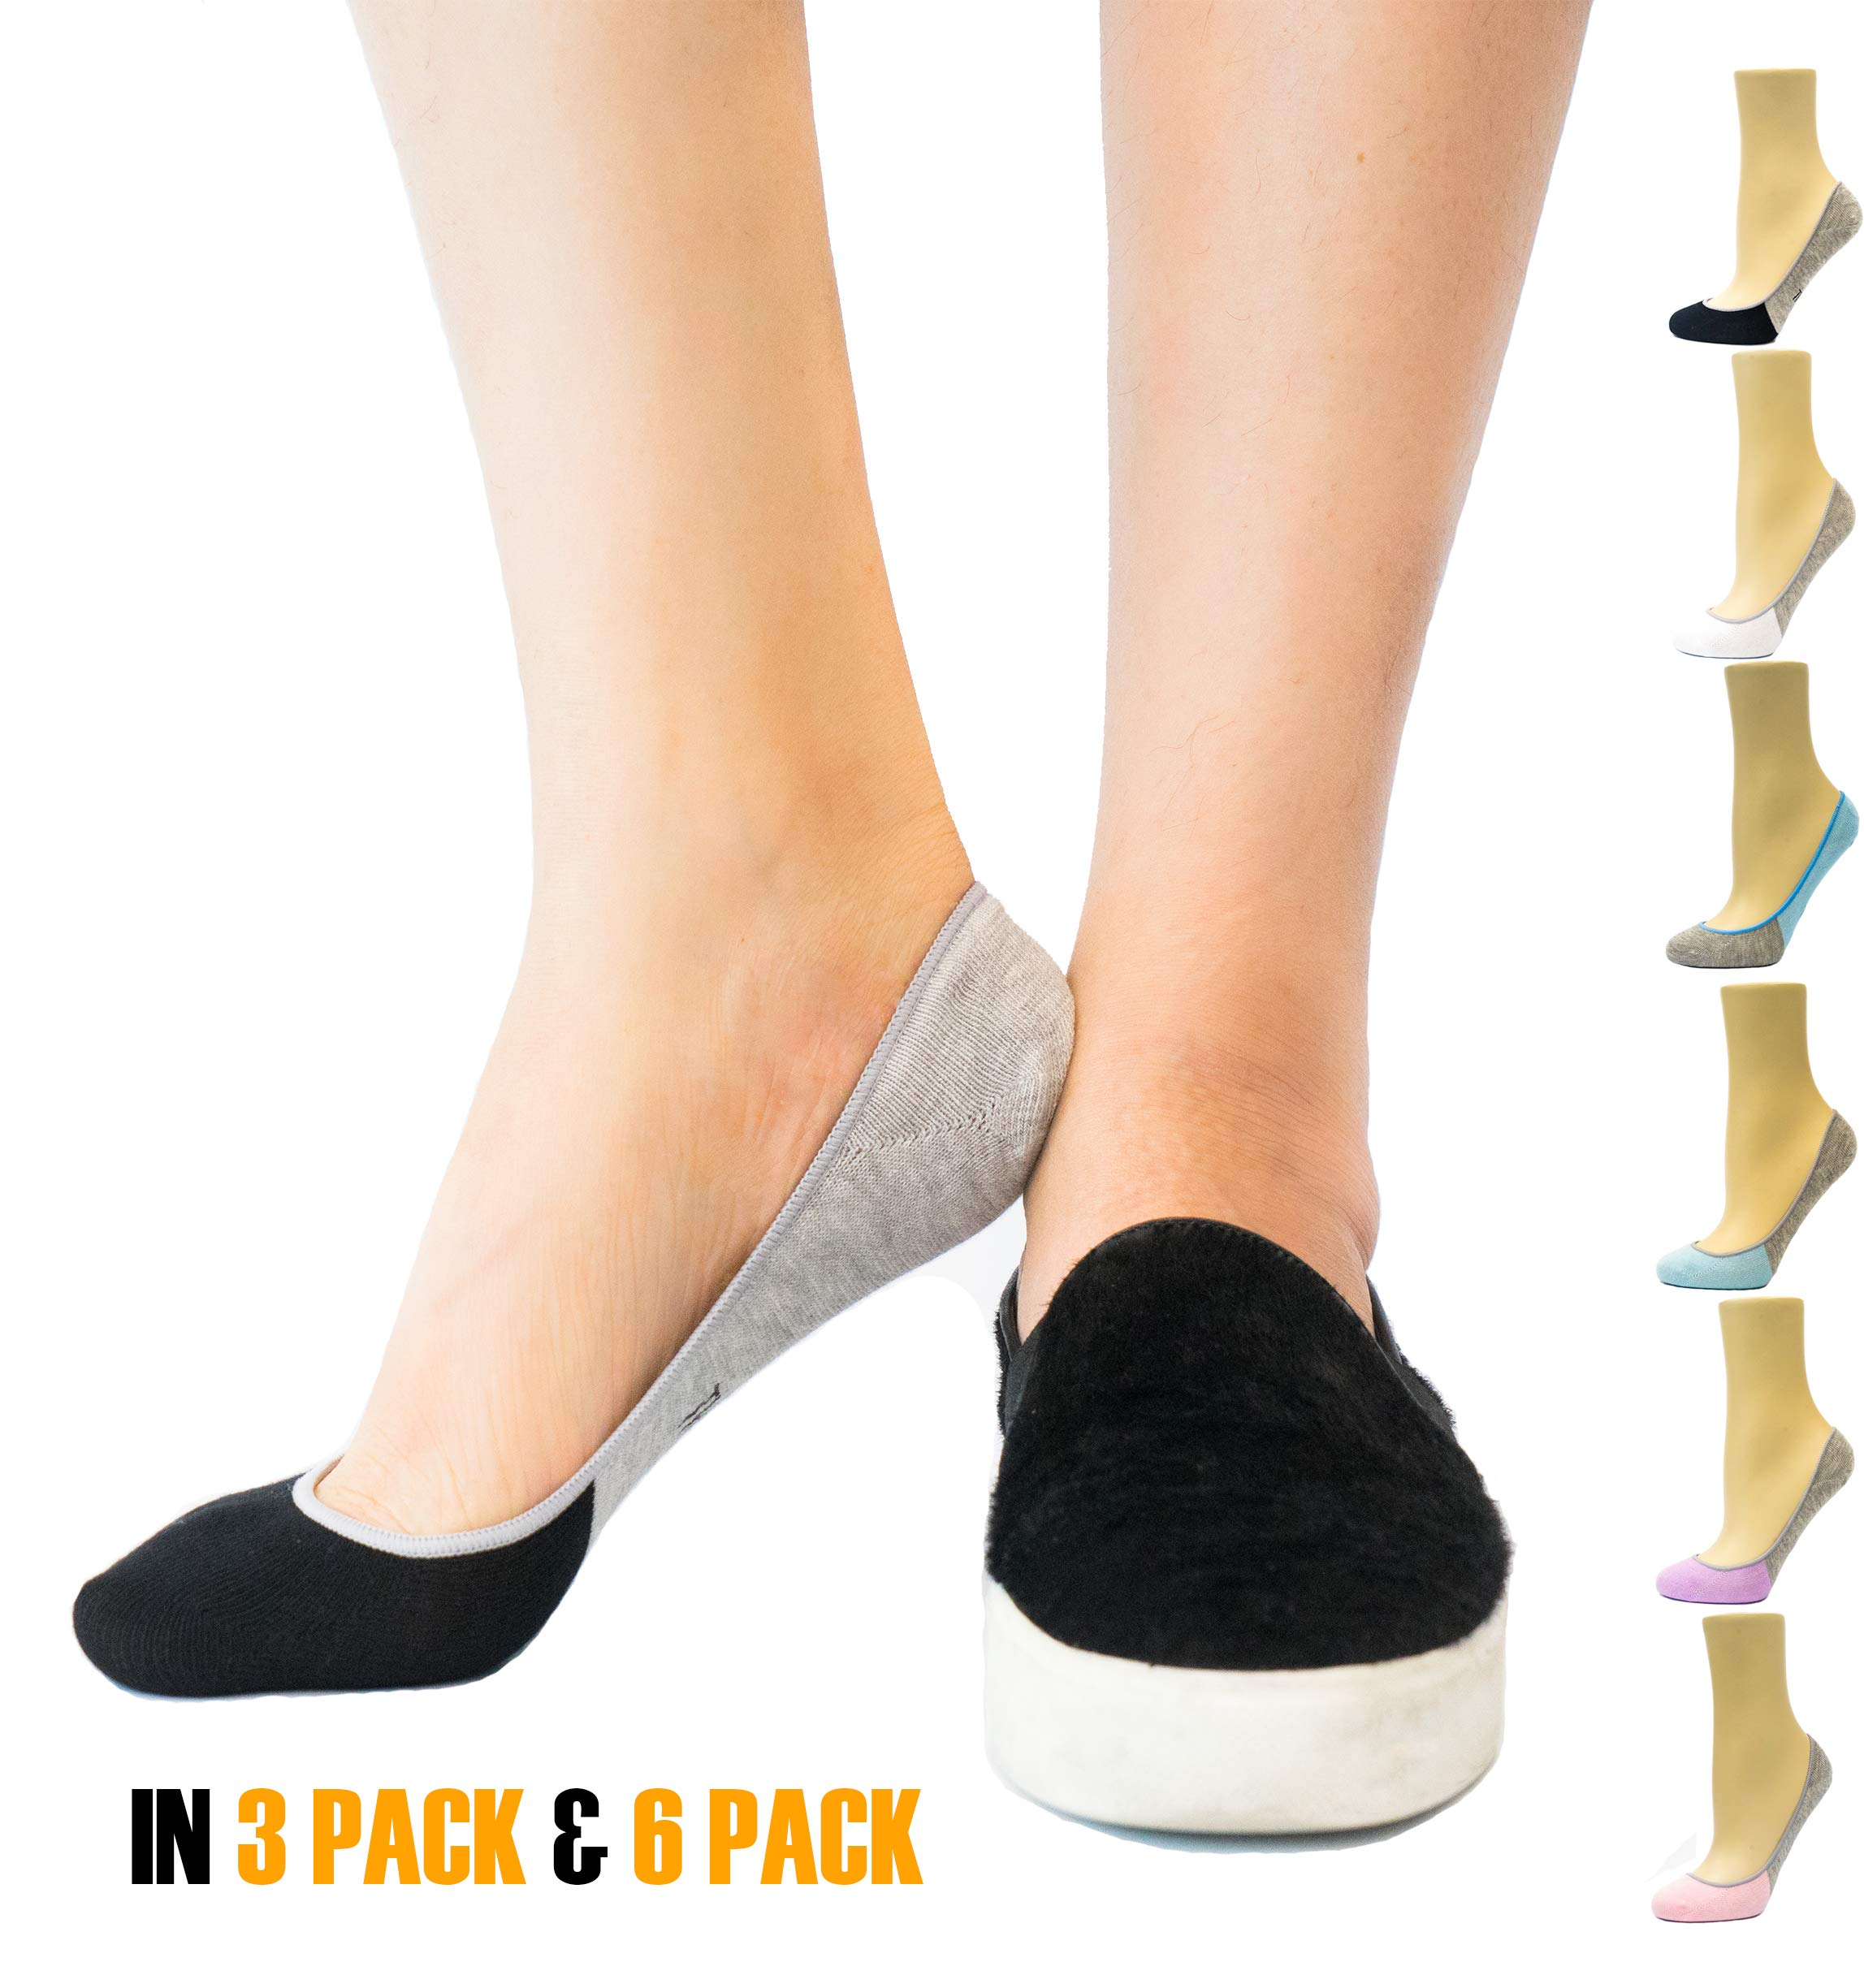 bfb4f4fecb01 Best Rated in Women s No Show   Liner Socks   Helpful Customer ...